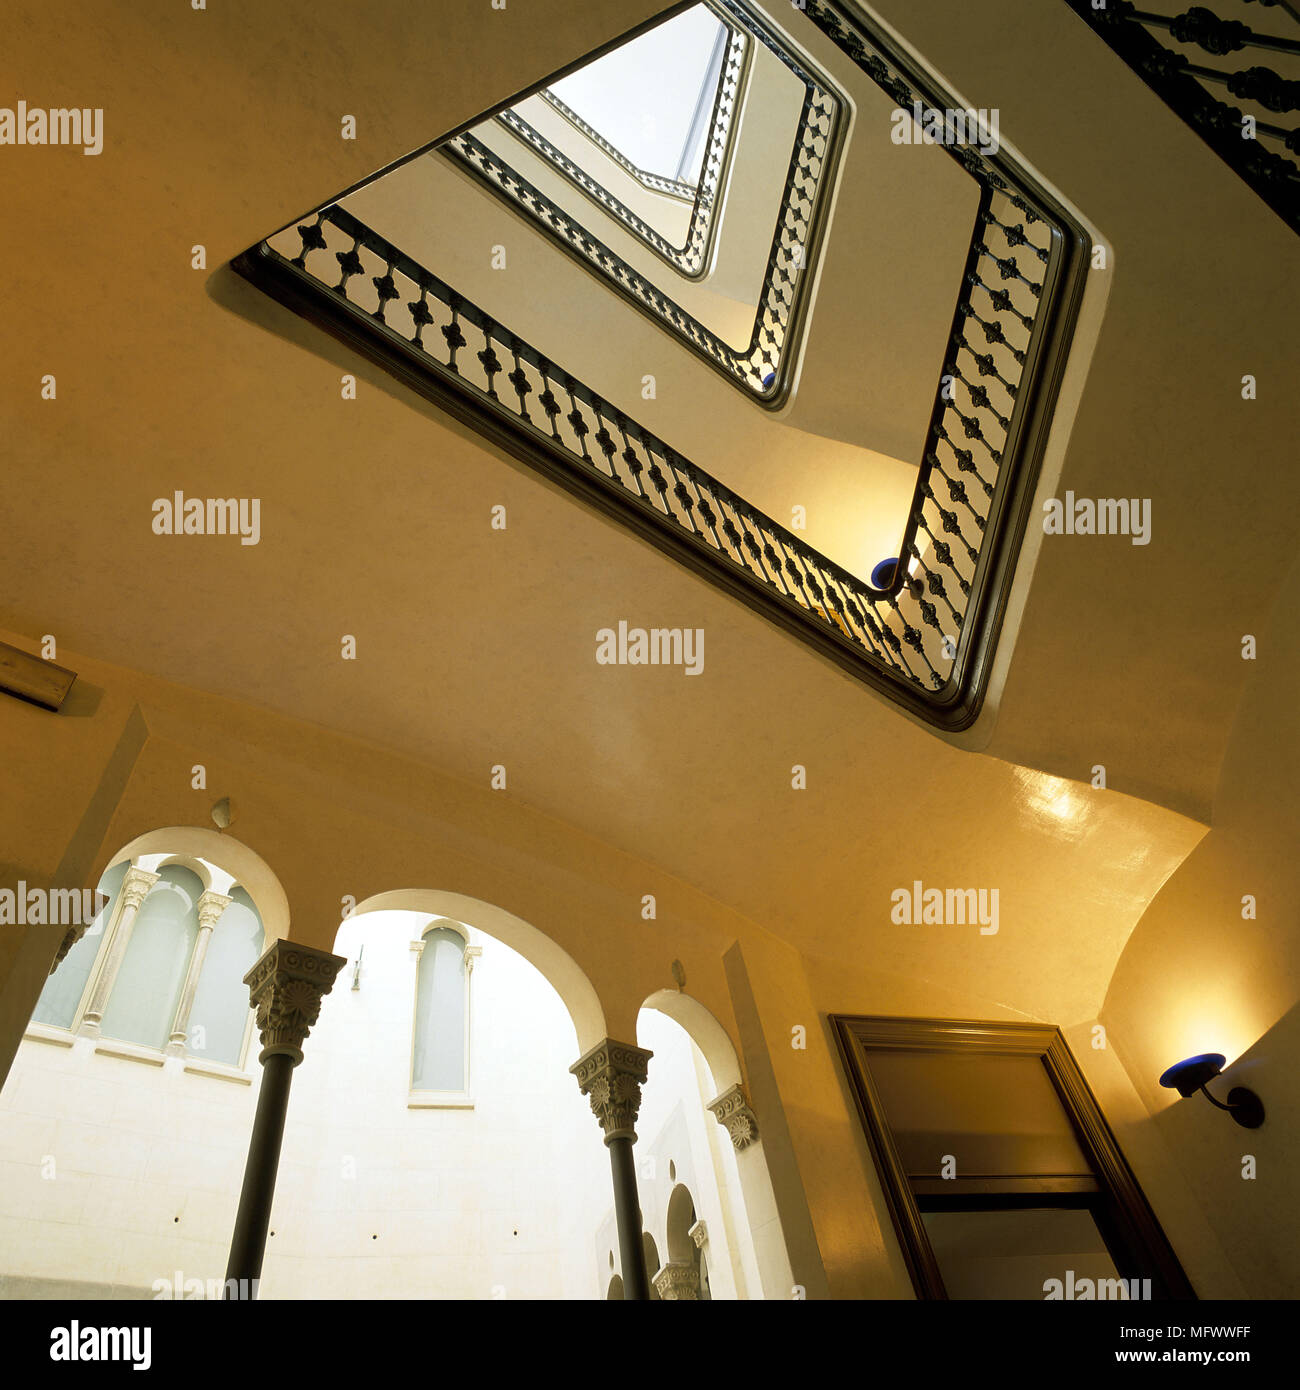 Stairways Home Stock Photos U0026 Stairways Home Stock Images ...